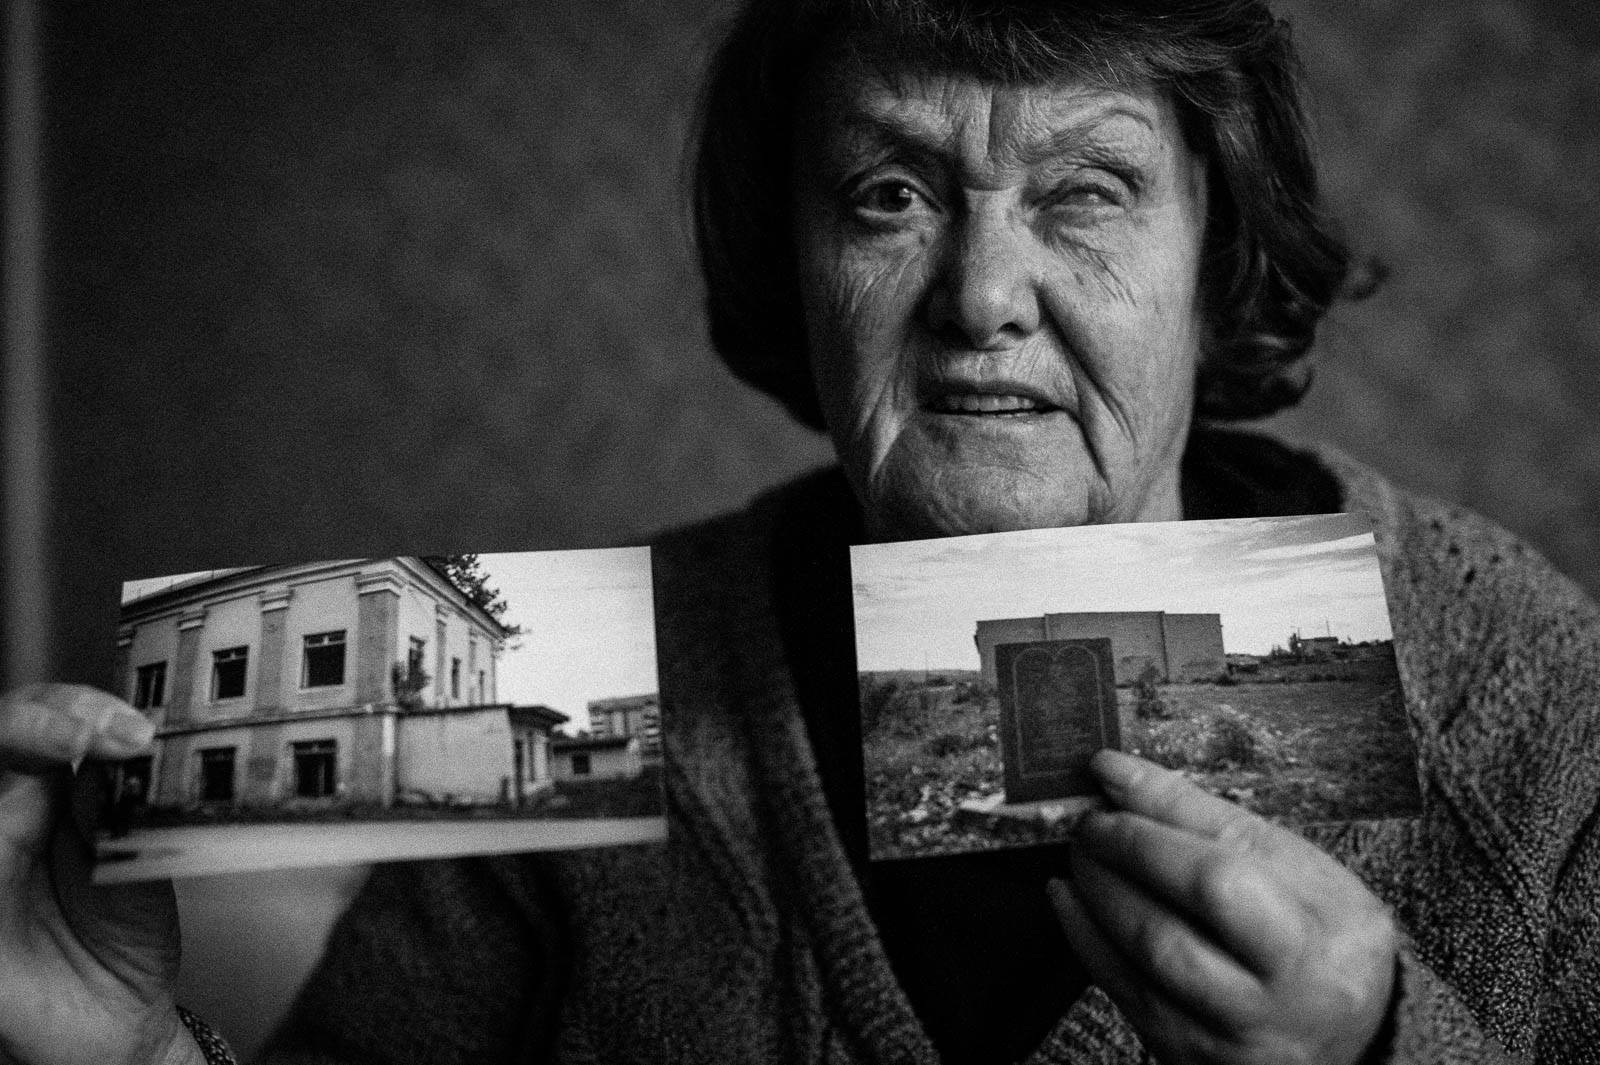 Arik Shraga. Central Ukraine. Alexandra shows the pictures of a ghetto where her family was murdered